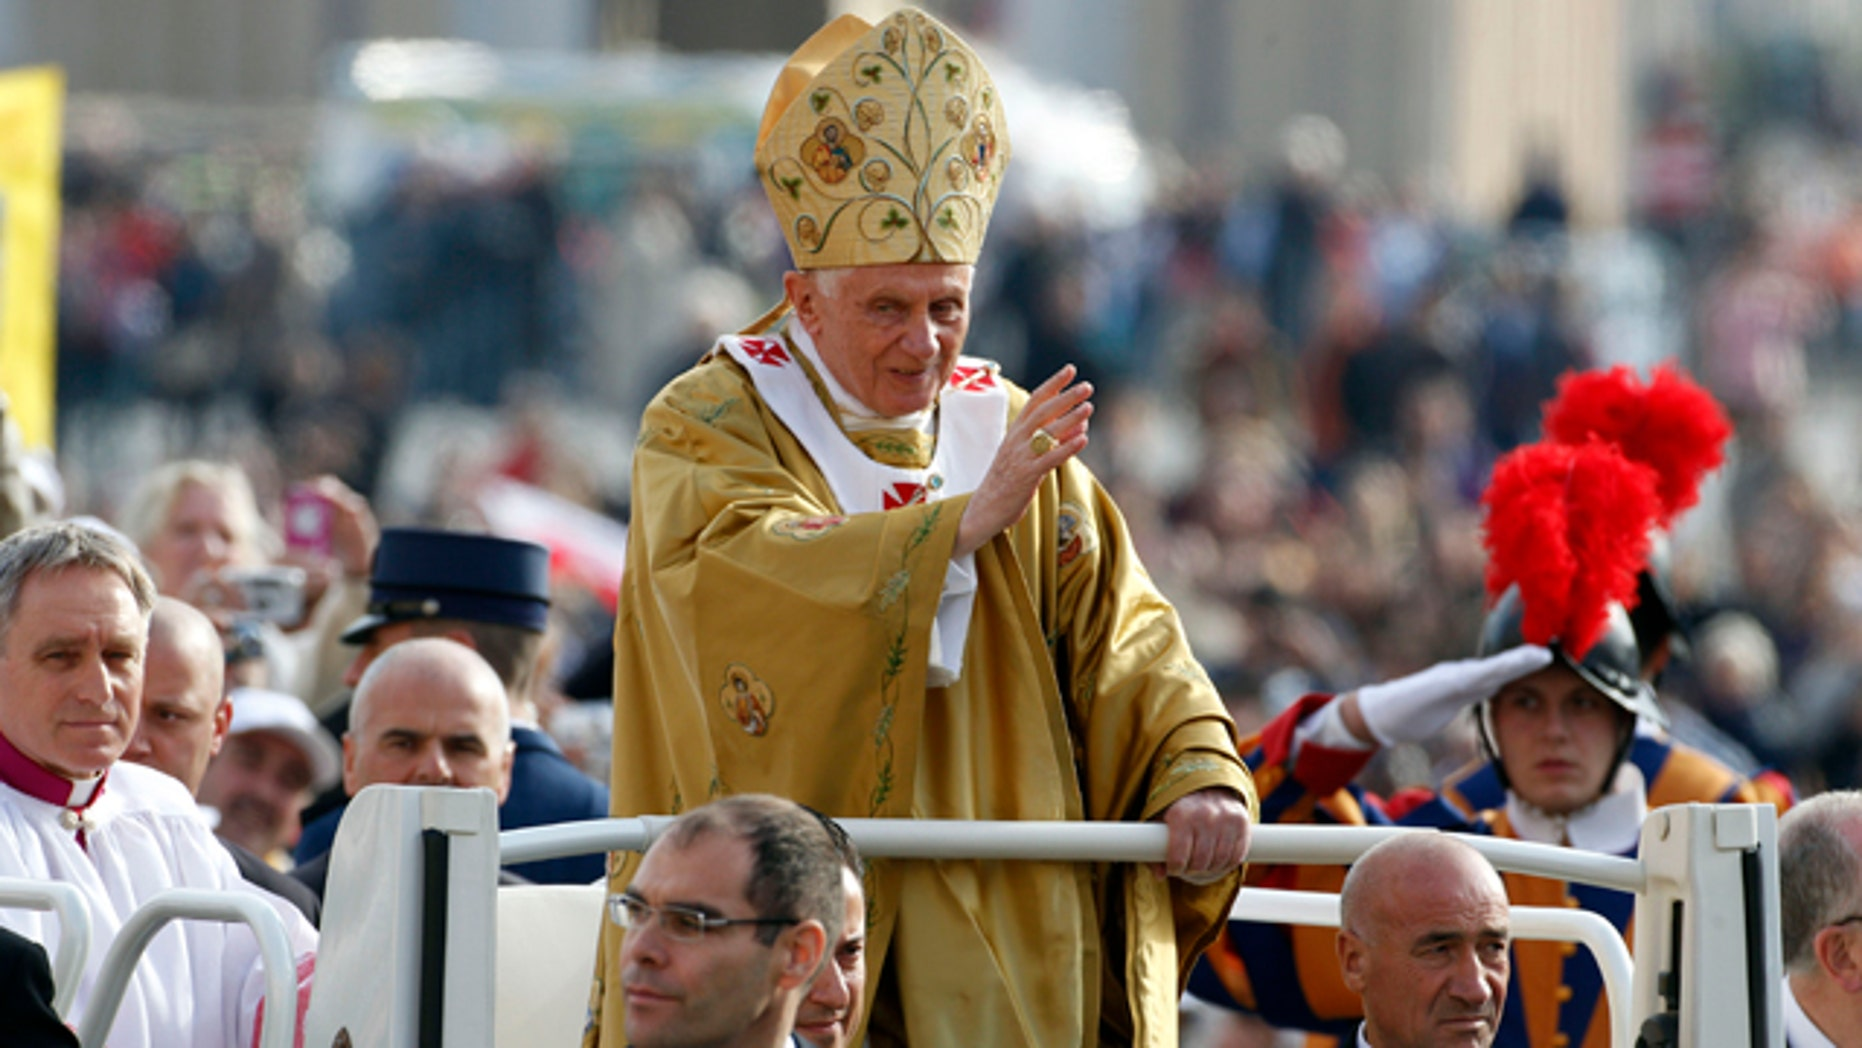 Oct. 23, 2011: Pope Benedict XVI, center, delivers his blessing as he arrives in St. Peter's square at the Vatican to celebrate a beatification mass.